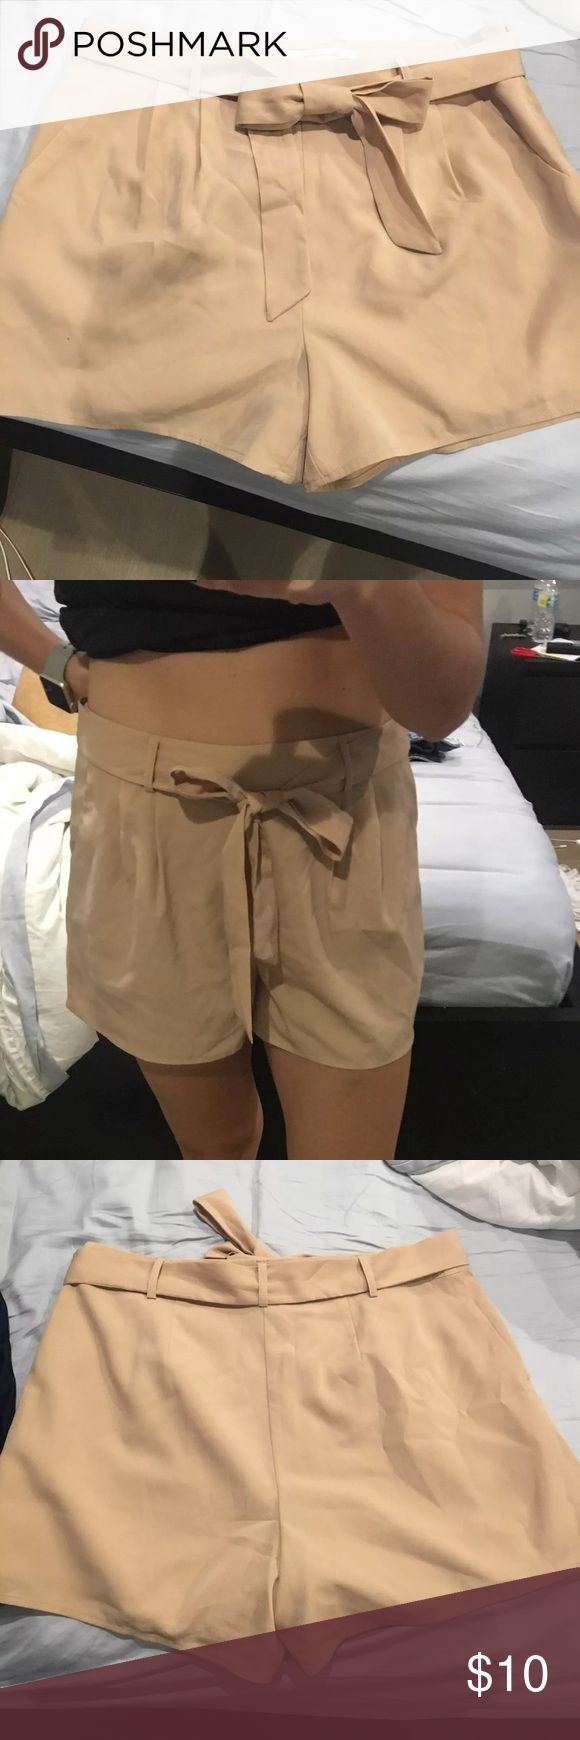 Pleated Nude Shorts Lauren Conrad size 10 high-waisted pleated nude shorts. They're too big on me and worn a few times. Material is so soft, 100% polyester. Shorts